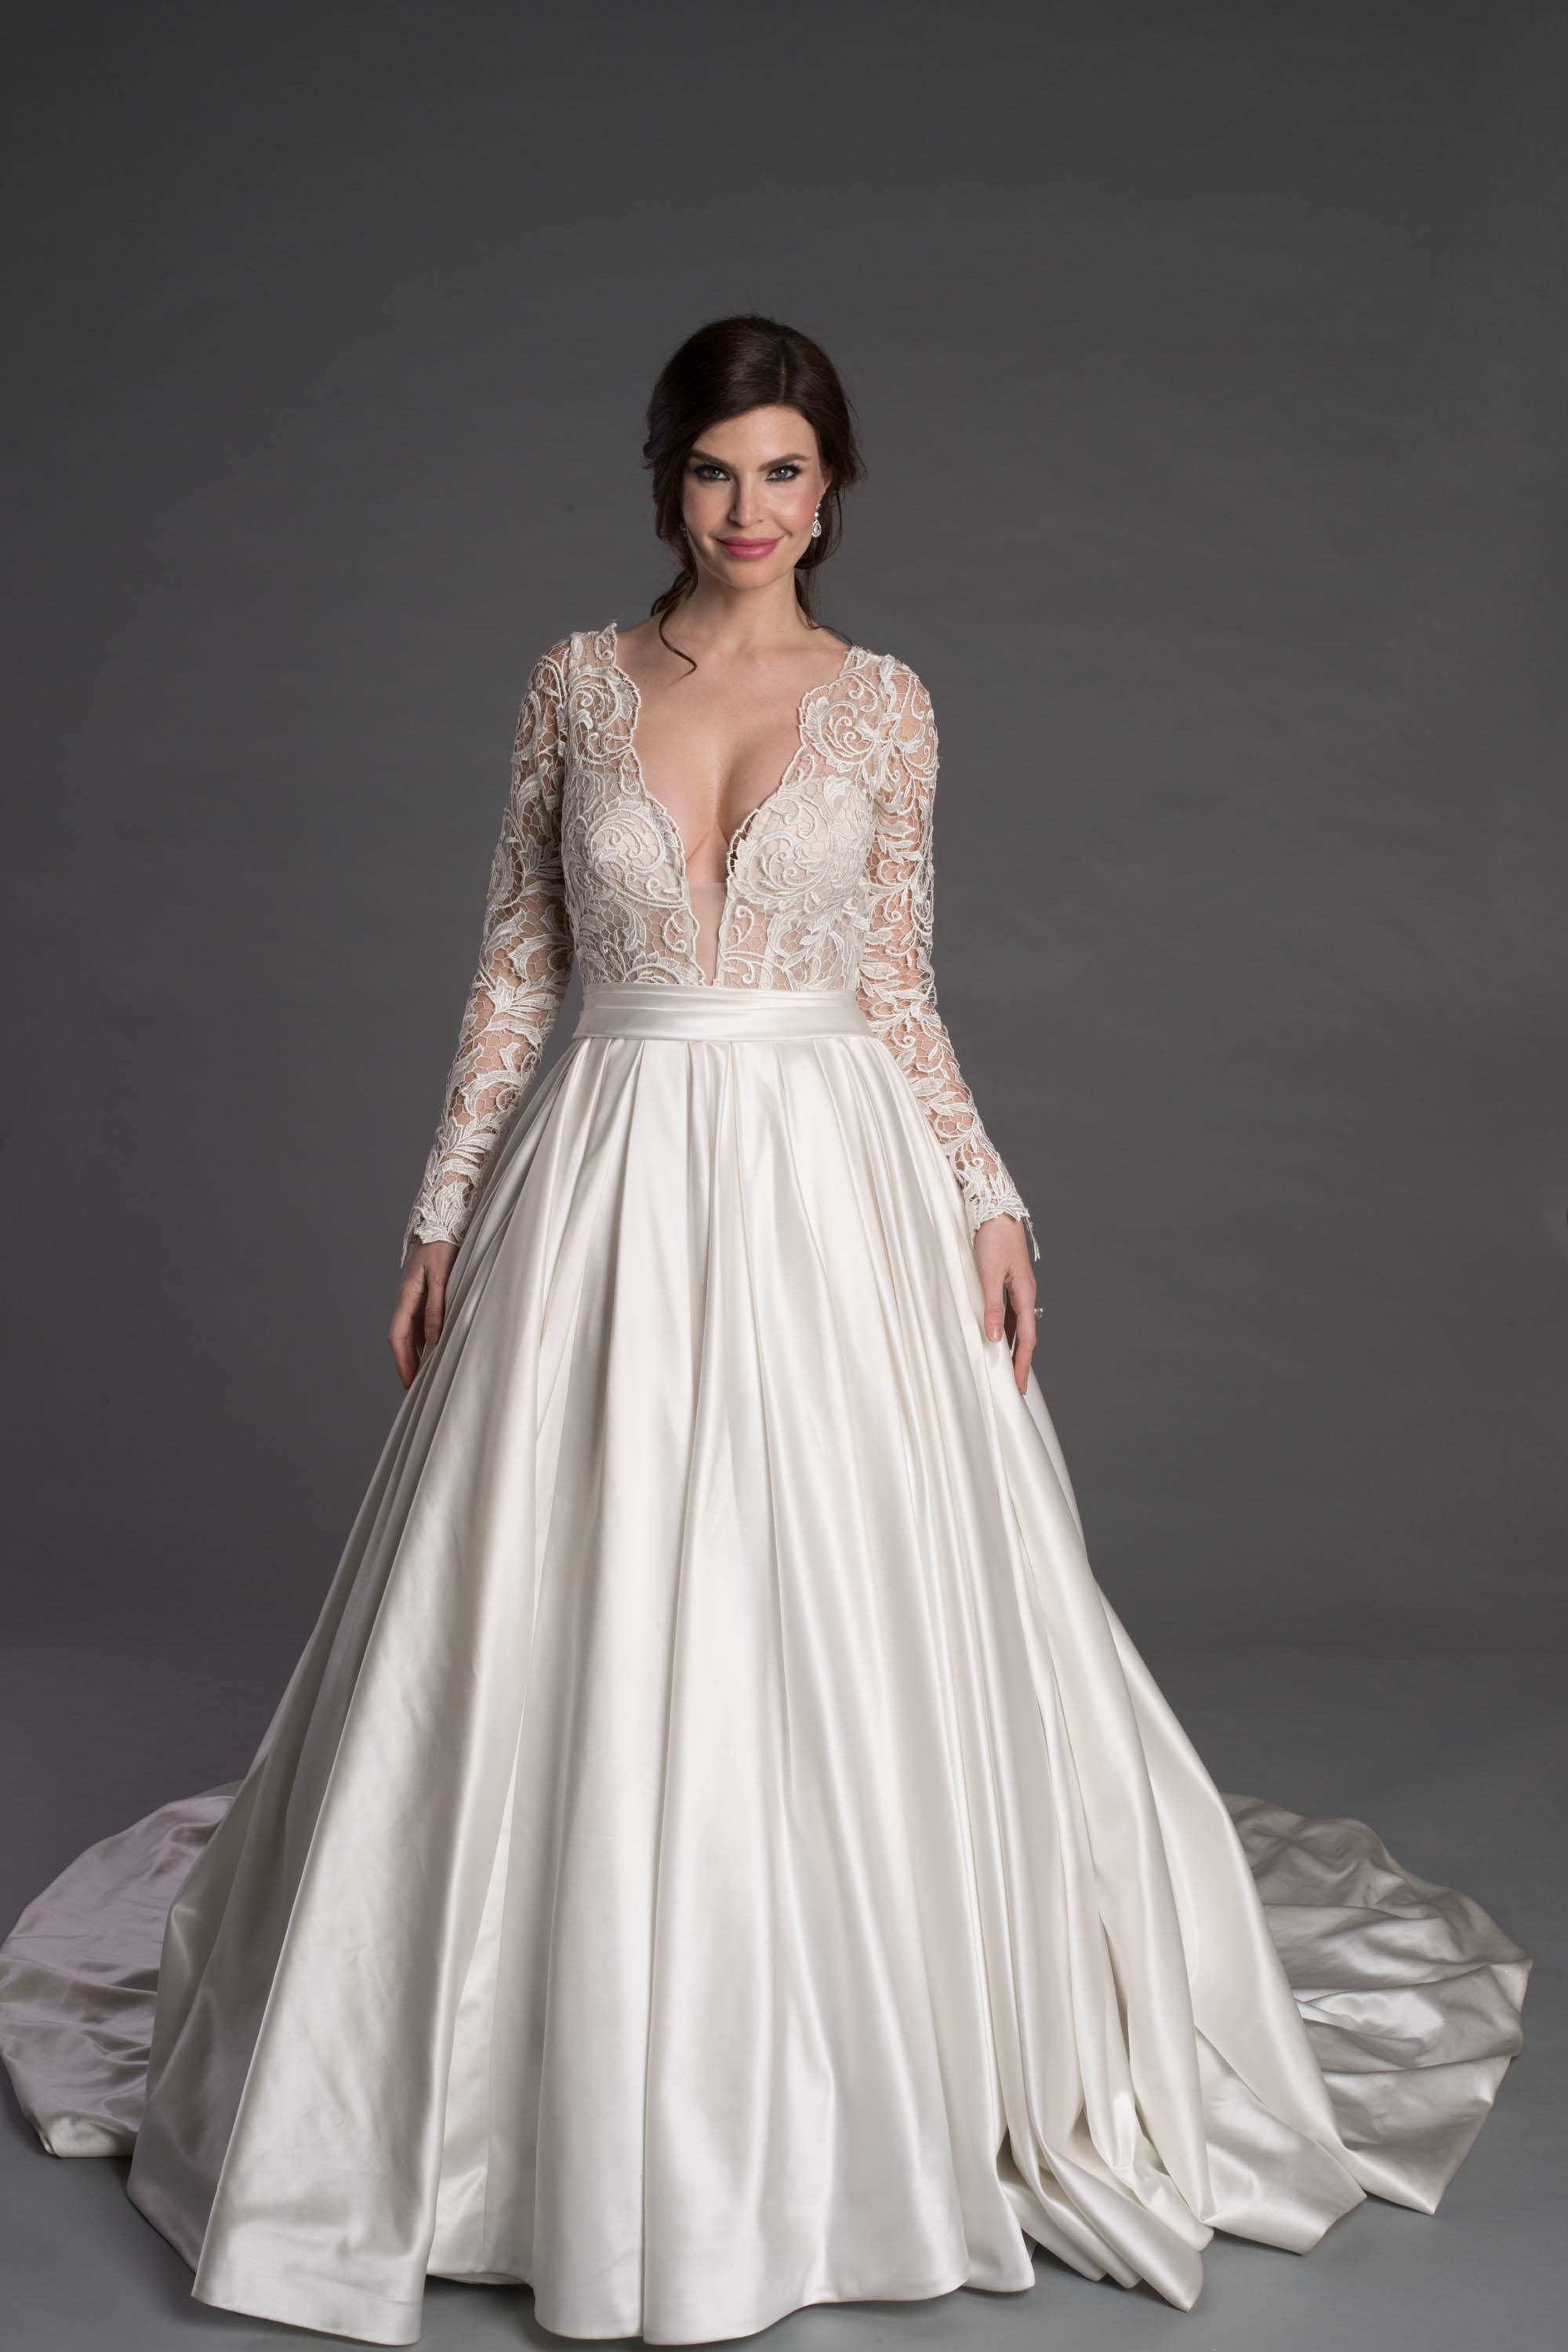 Long Sleeve Ballgown With Lace And Plunging V Neckline